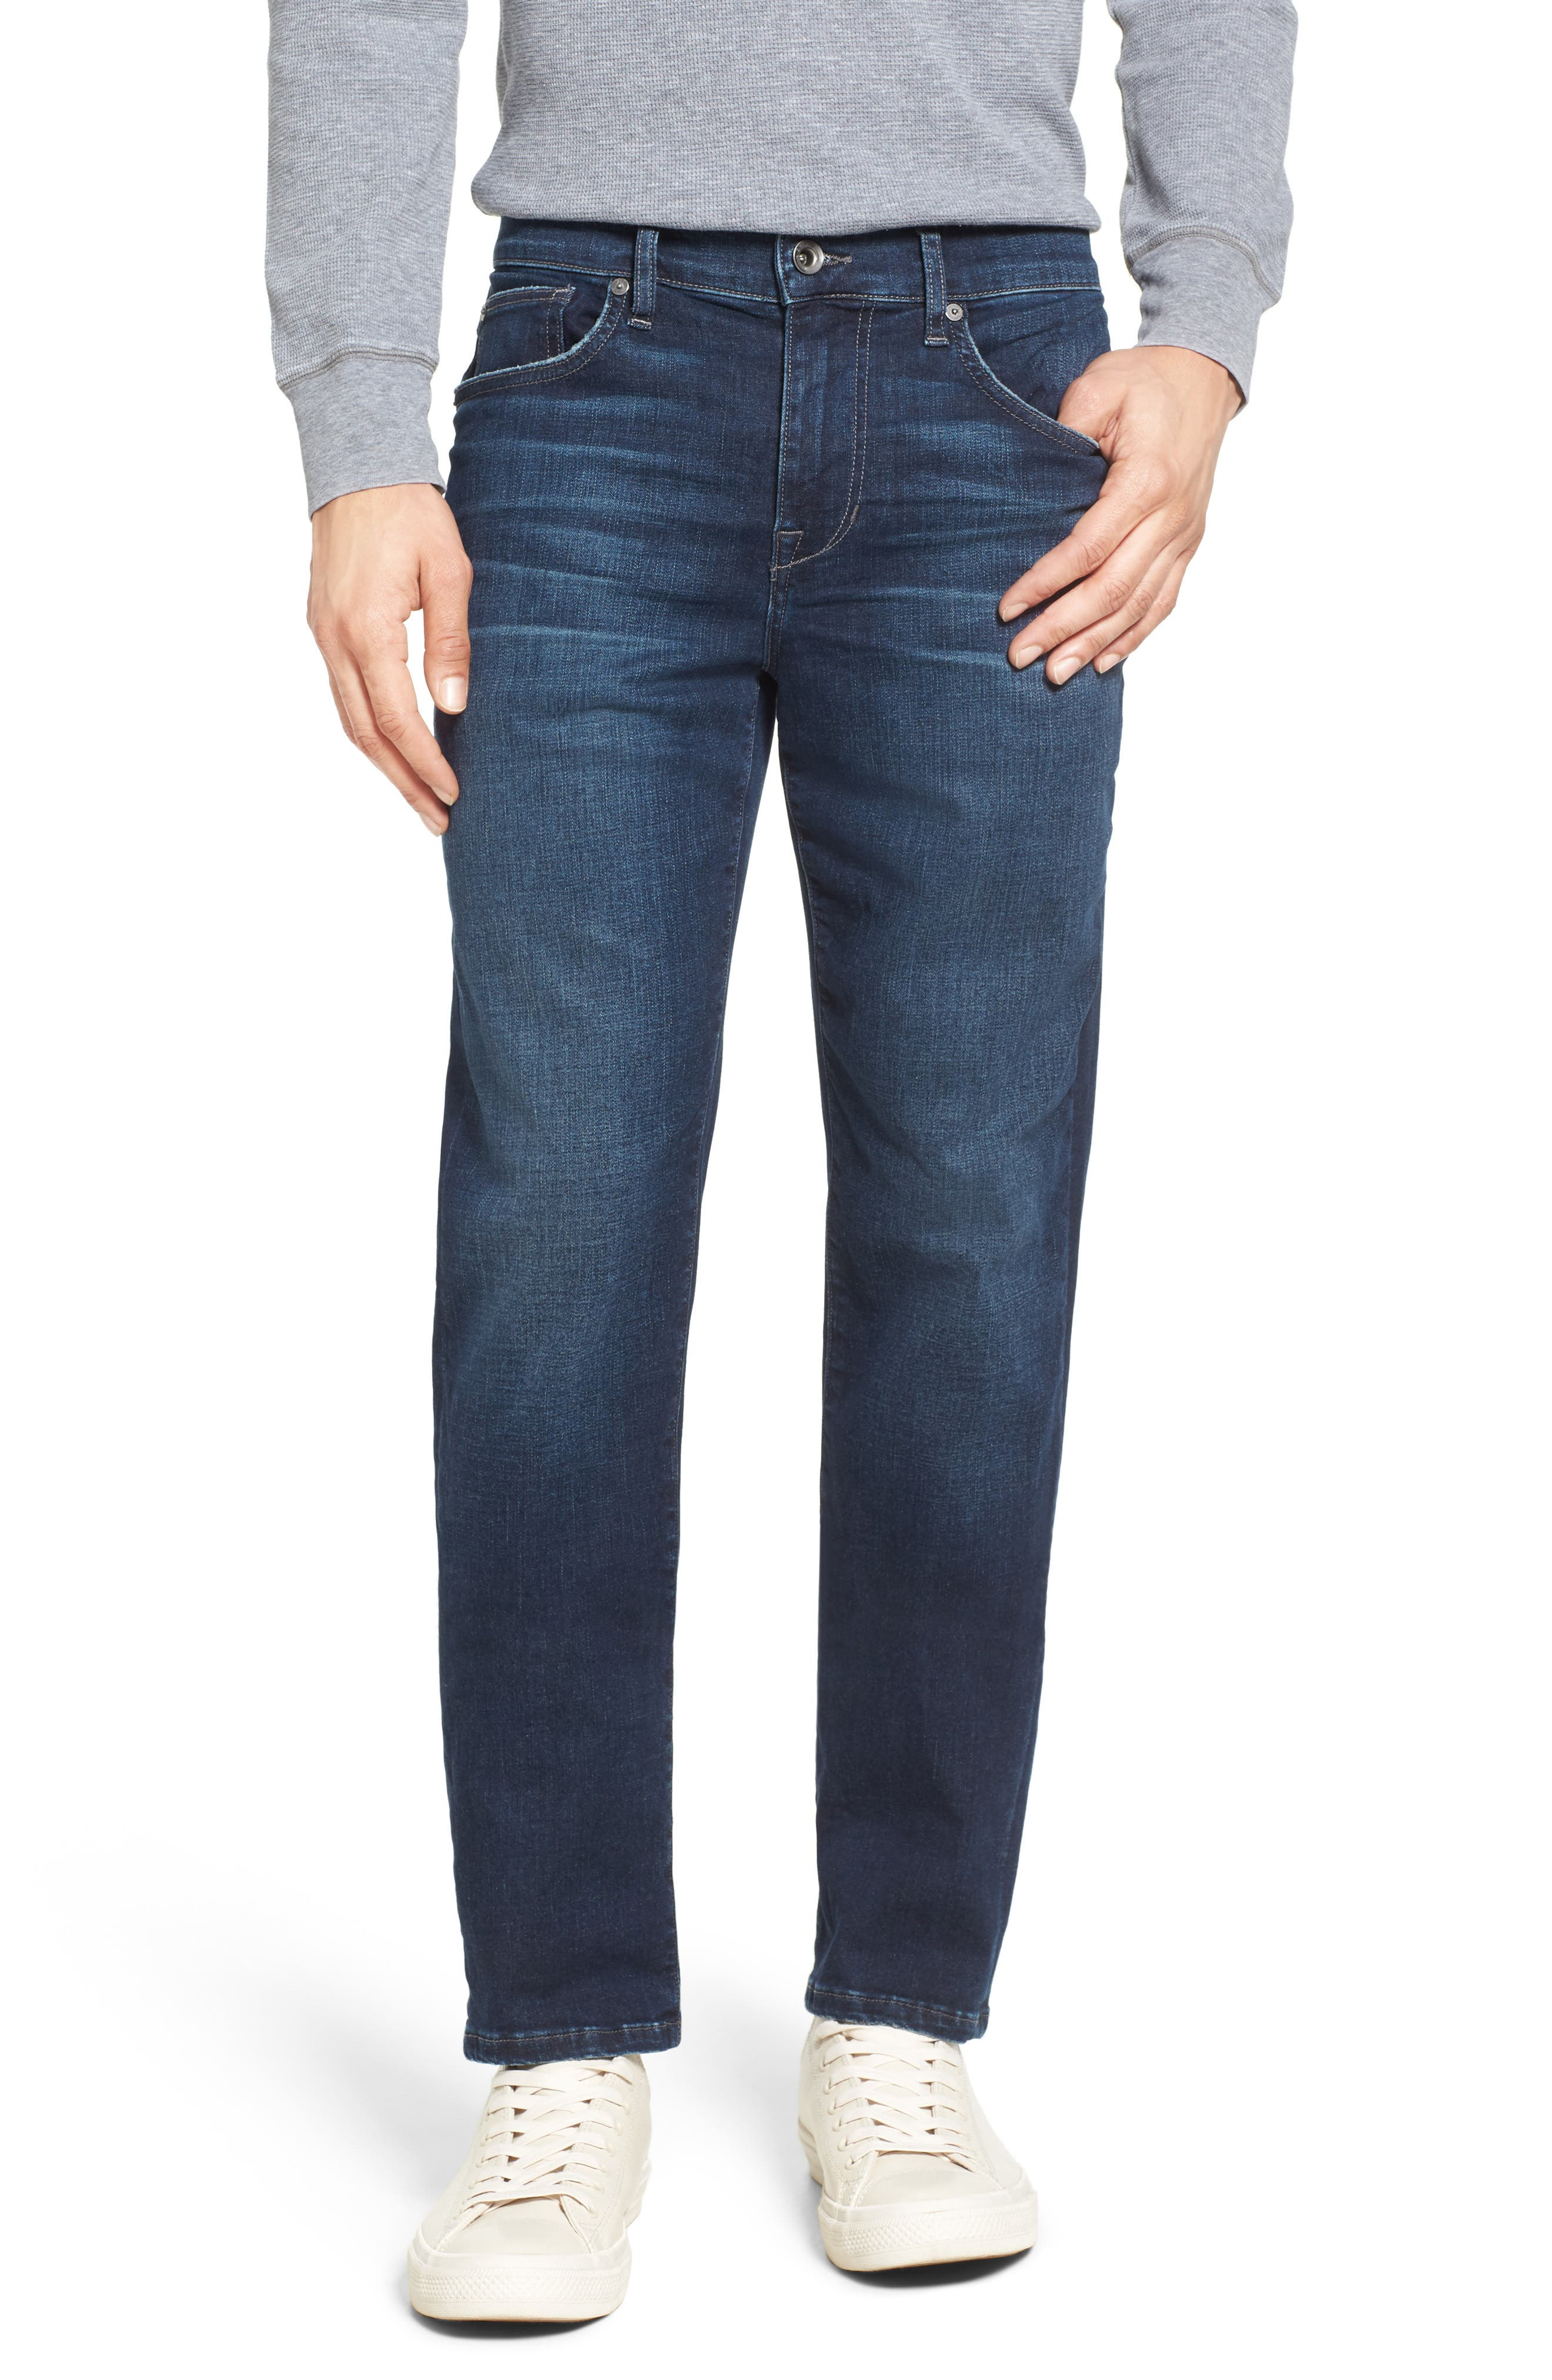 Kinetic Slim Fit Jeans,                         Main,                         color, 400